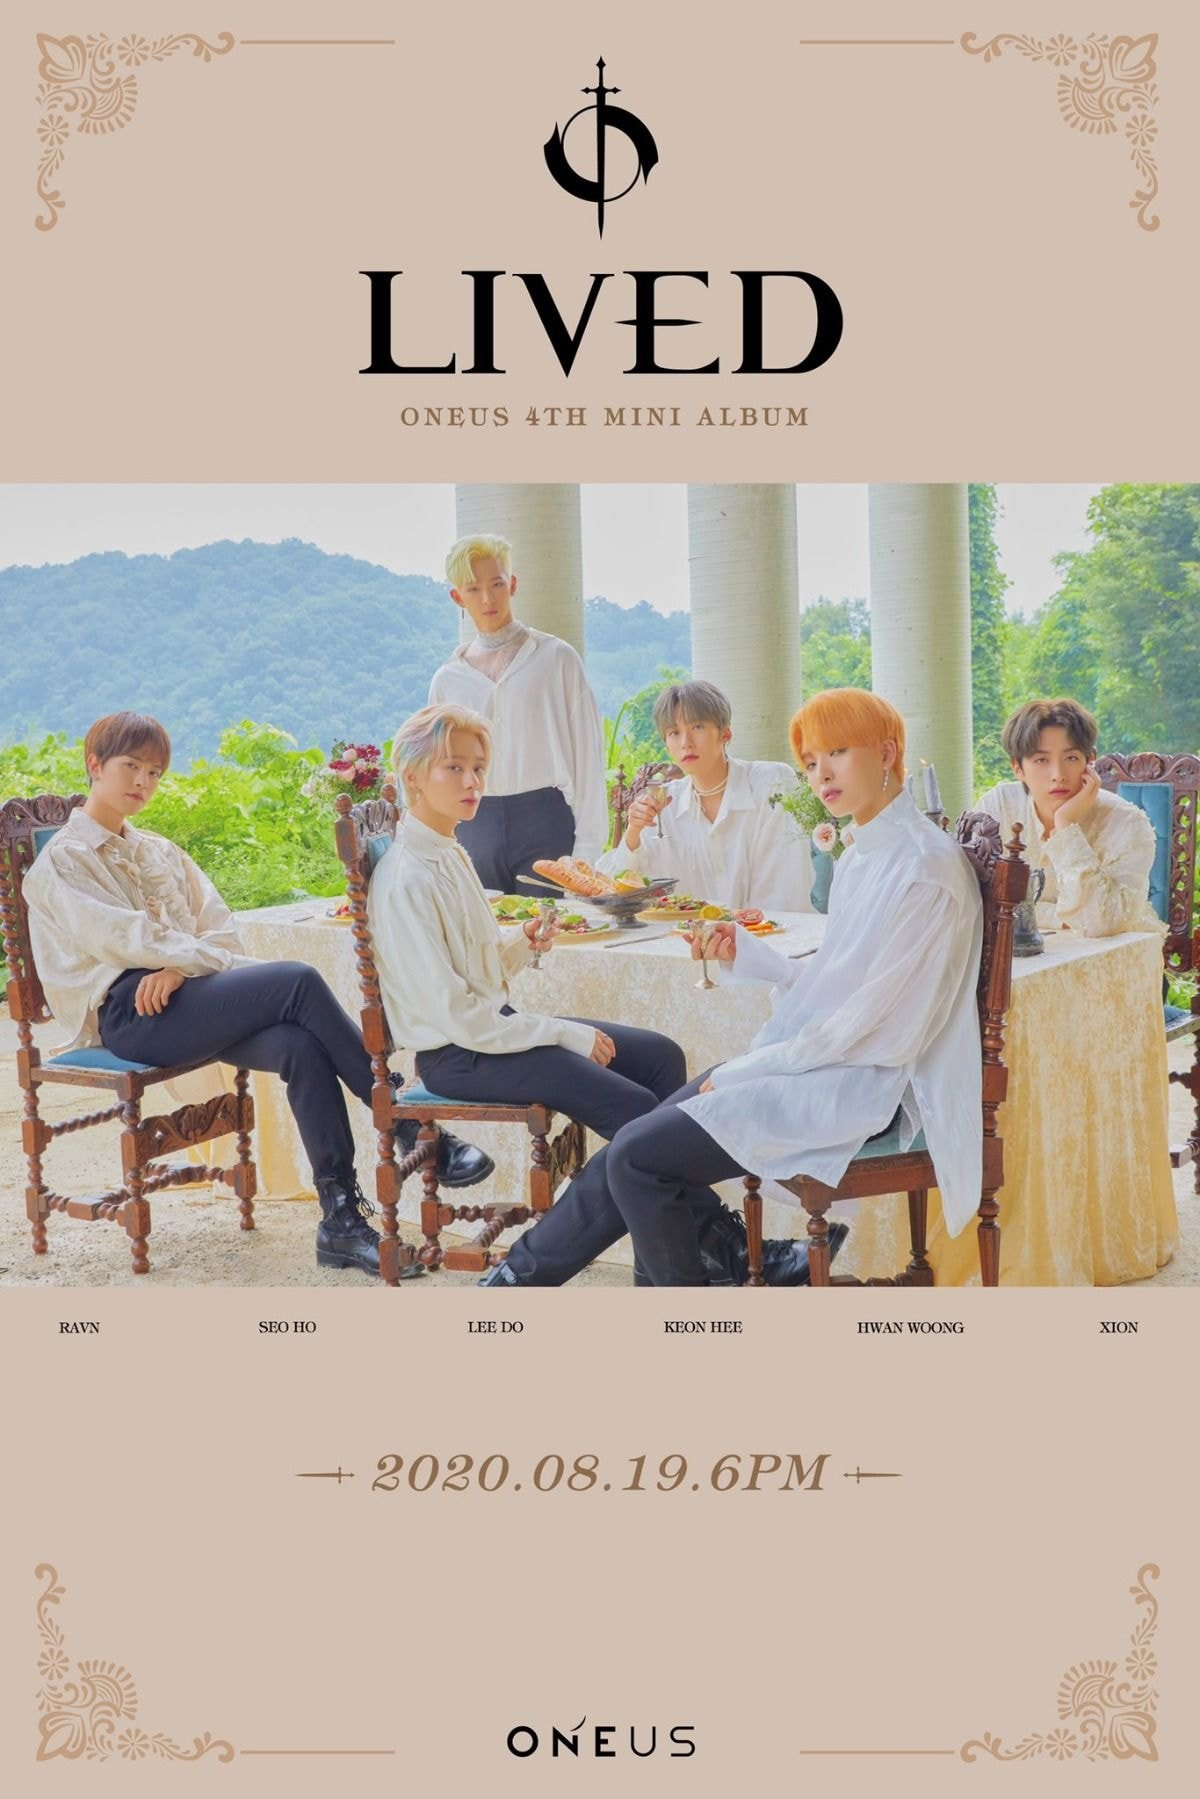 [#ONEUS]  4TH MINI ALBUM 'LIVED'  2020.08.19 6PM RELEASE✔  🔸 ONEUS CONCEPT PHOTO 🔸  #원어스 #COME_BACK #LIVED